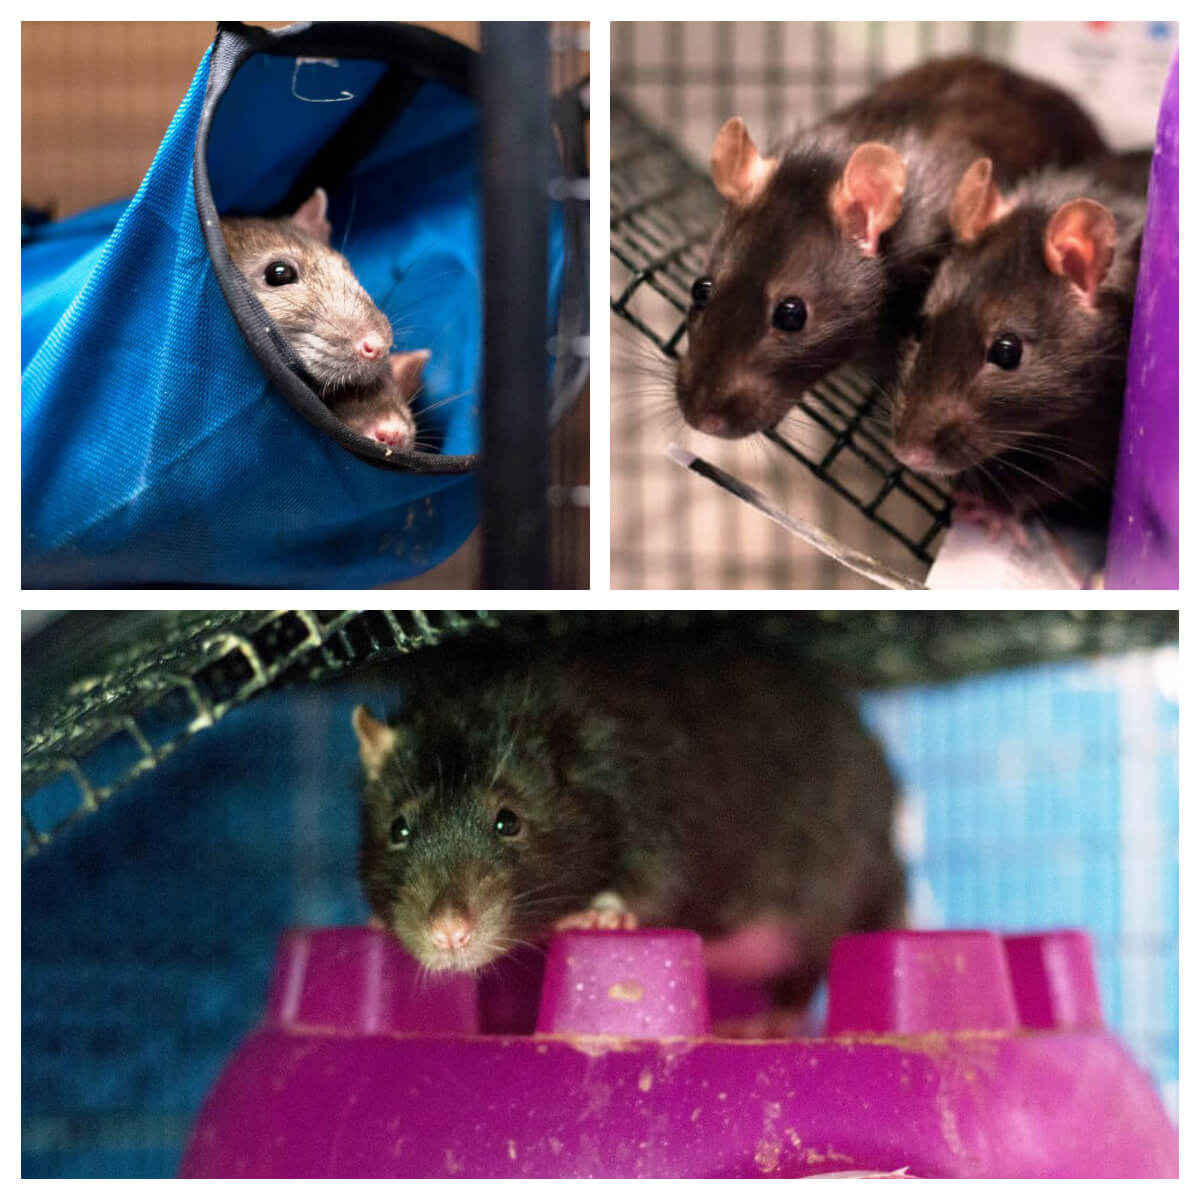 Teachkind Rescue Stories Rescued Rats Find New Home